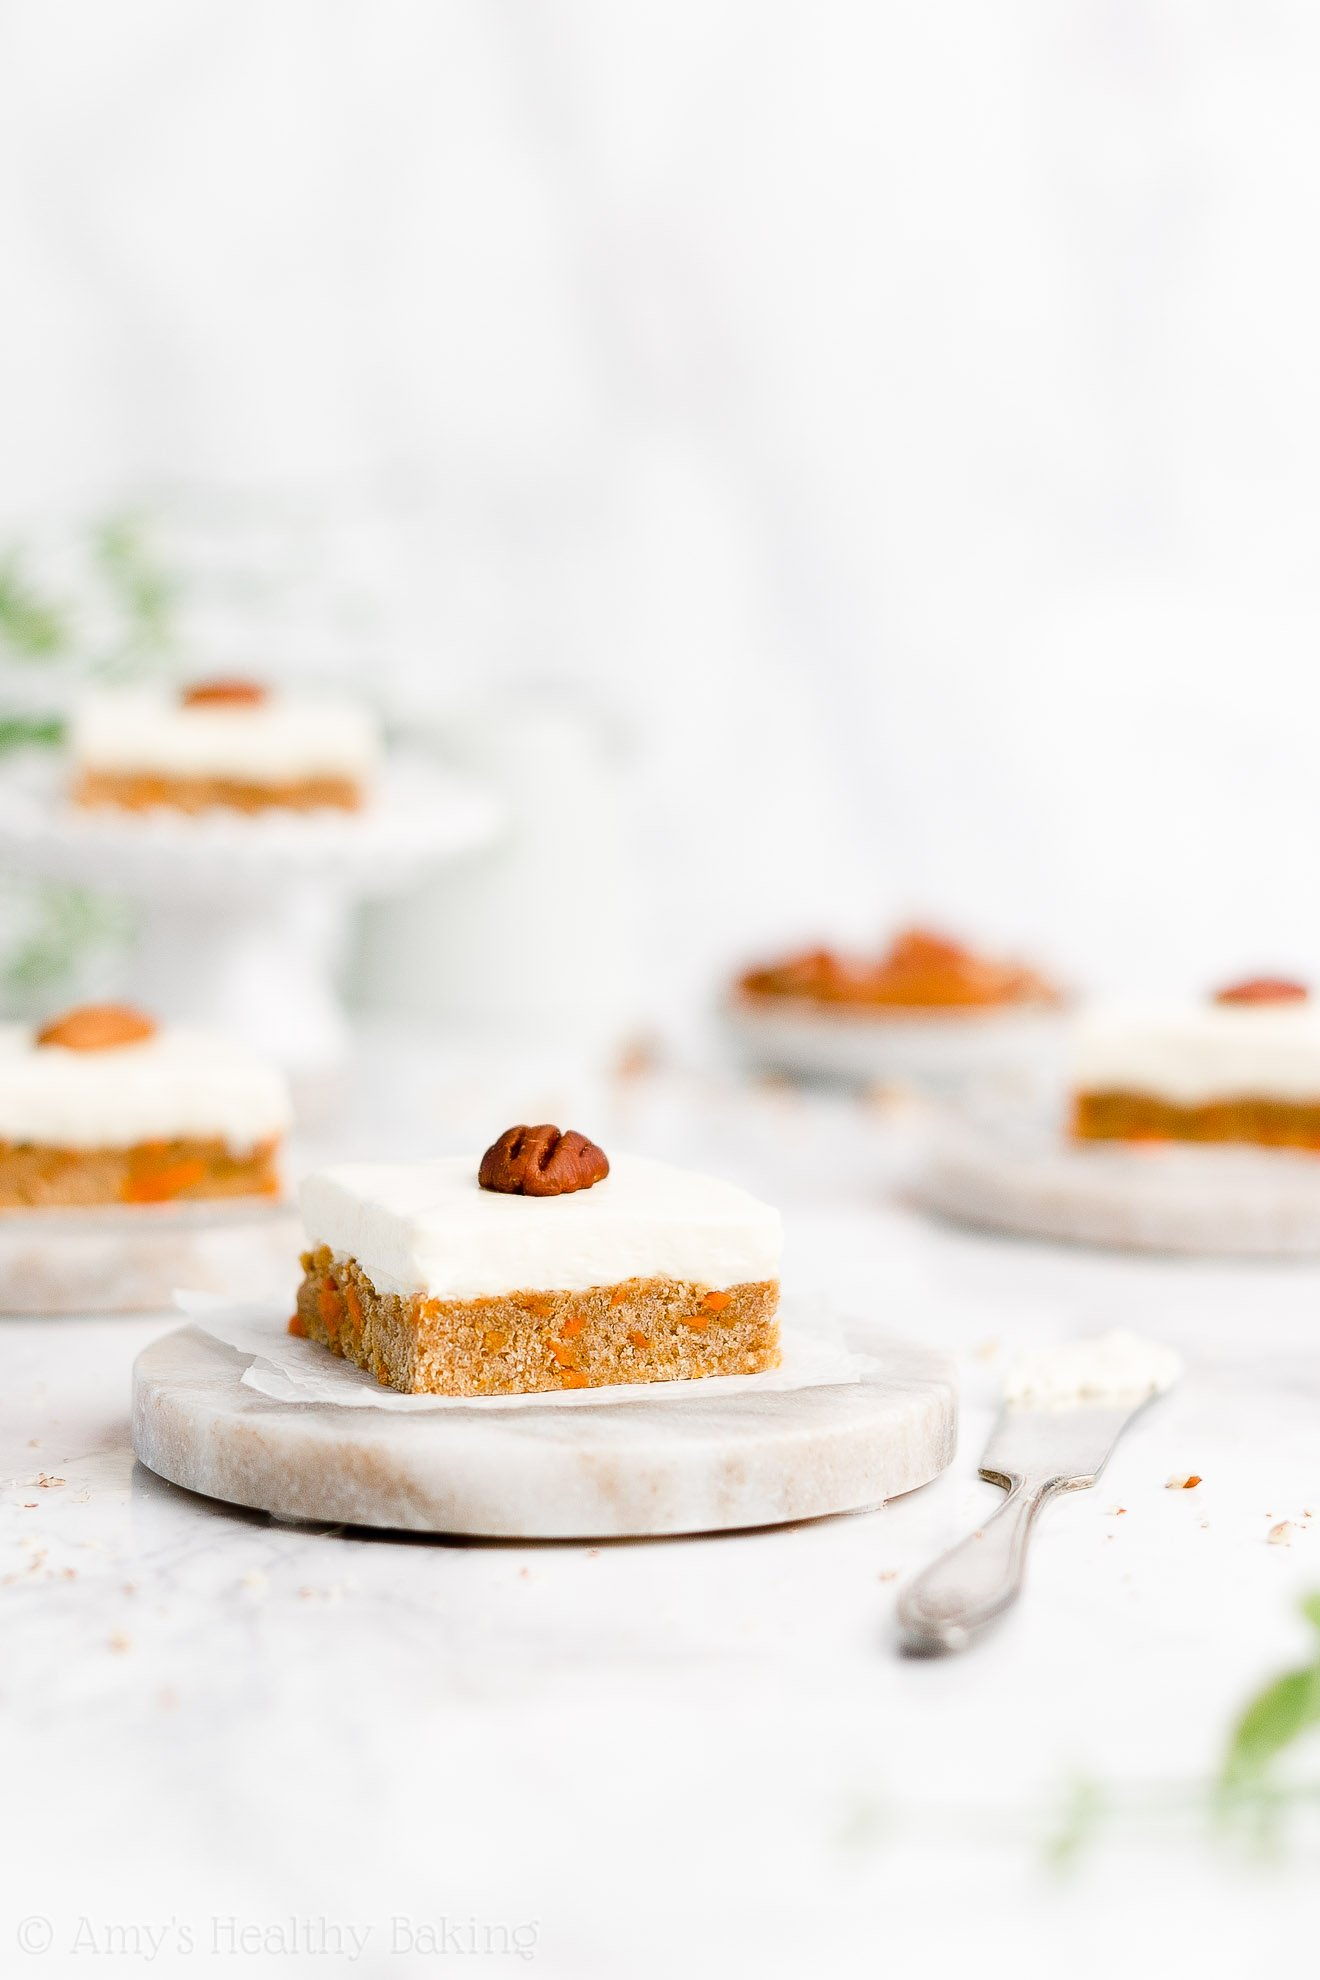 Easy Healthy Gluten Free Low Fat No Sugar Carrot Cake Cookie Bars + Cream Cheese Frosting